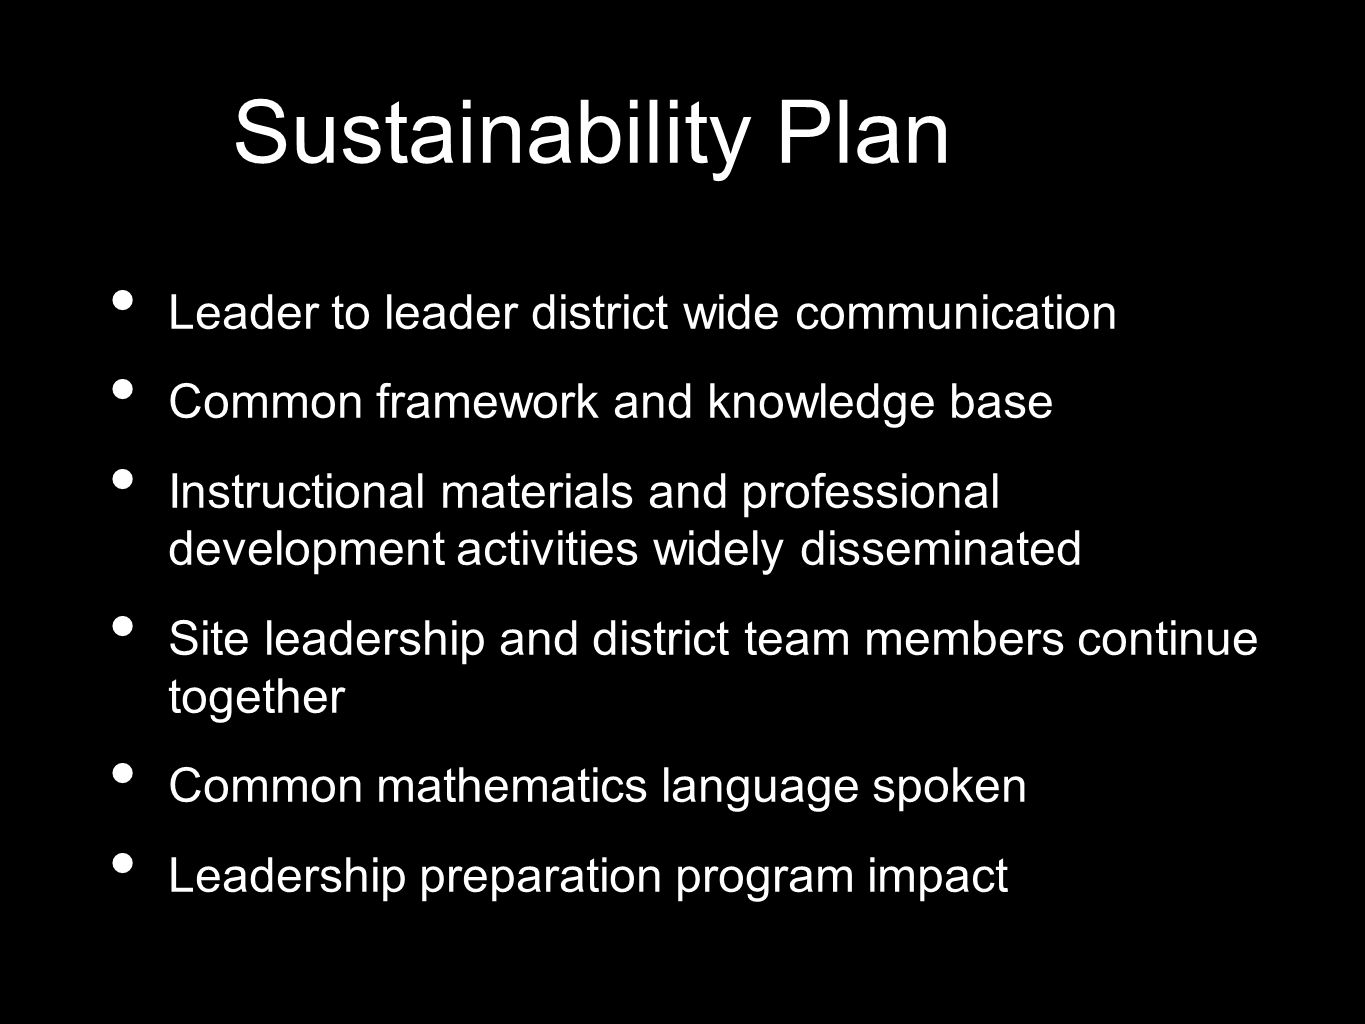 Sustainability Plan Leader to leader district wide communication Common framework and knowledge base Instructional materials and professional development activities widely disseminated Site leadership and district team members continue together Common mathematics language spoken Leadership preparation program impact